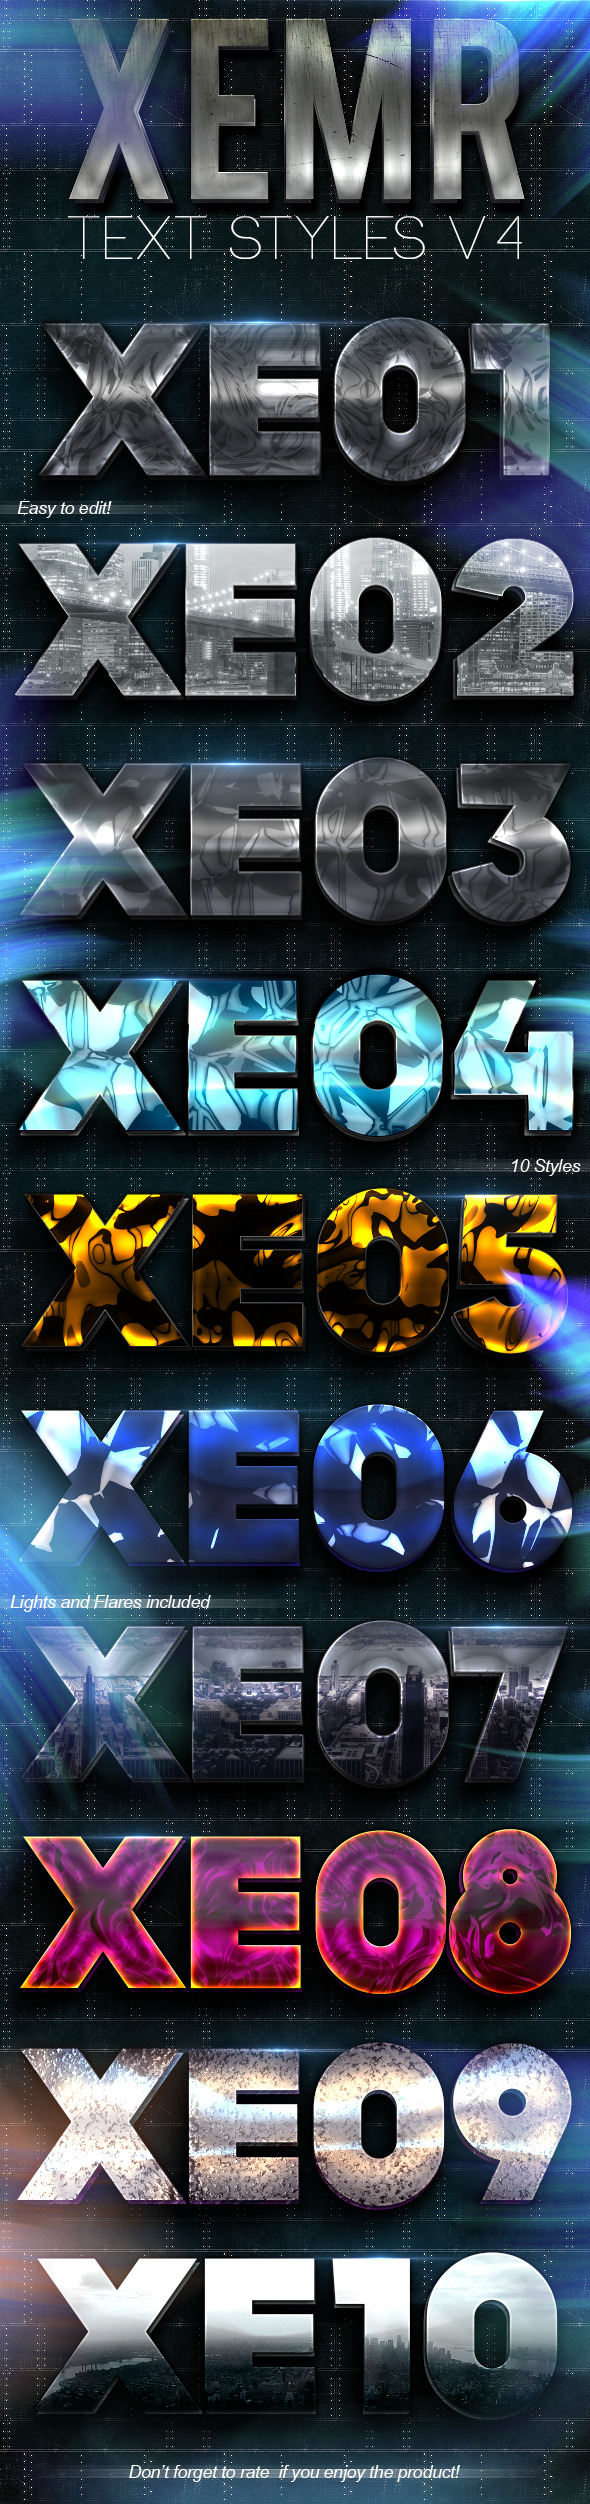 Xemr Photoshop Text Styles V4 - Text Effects Styles